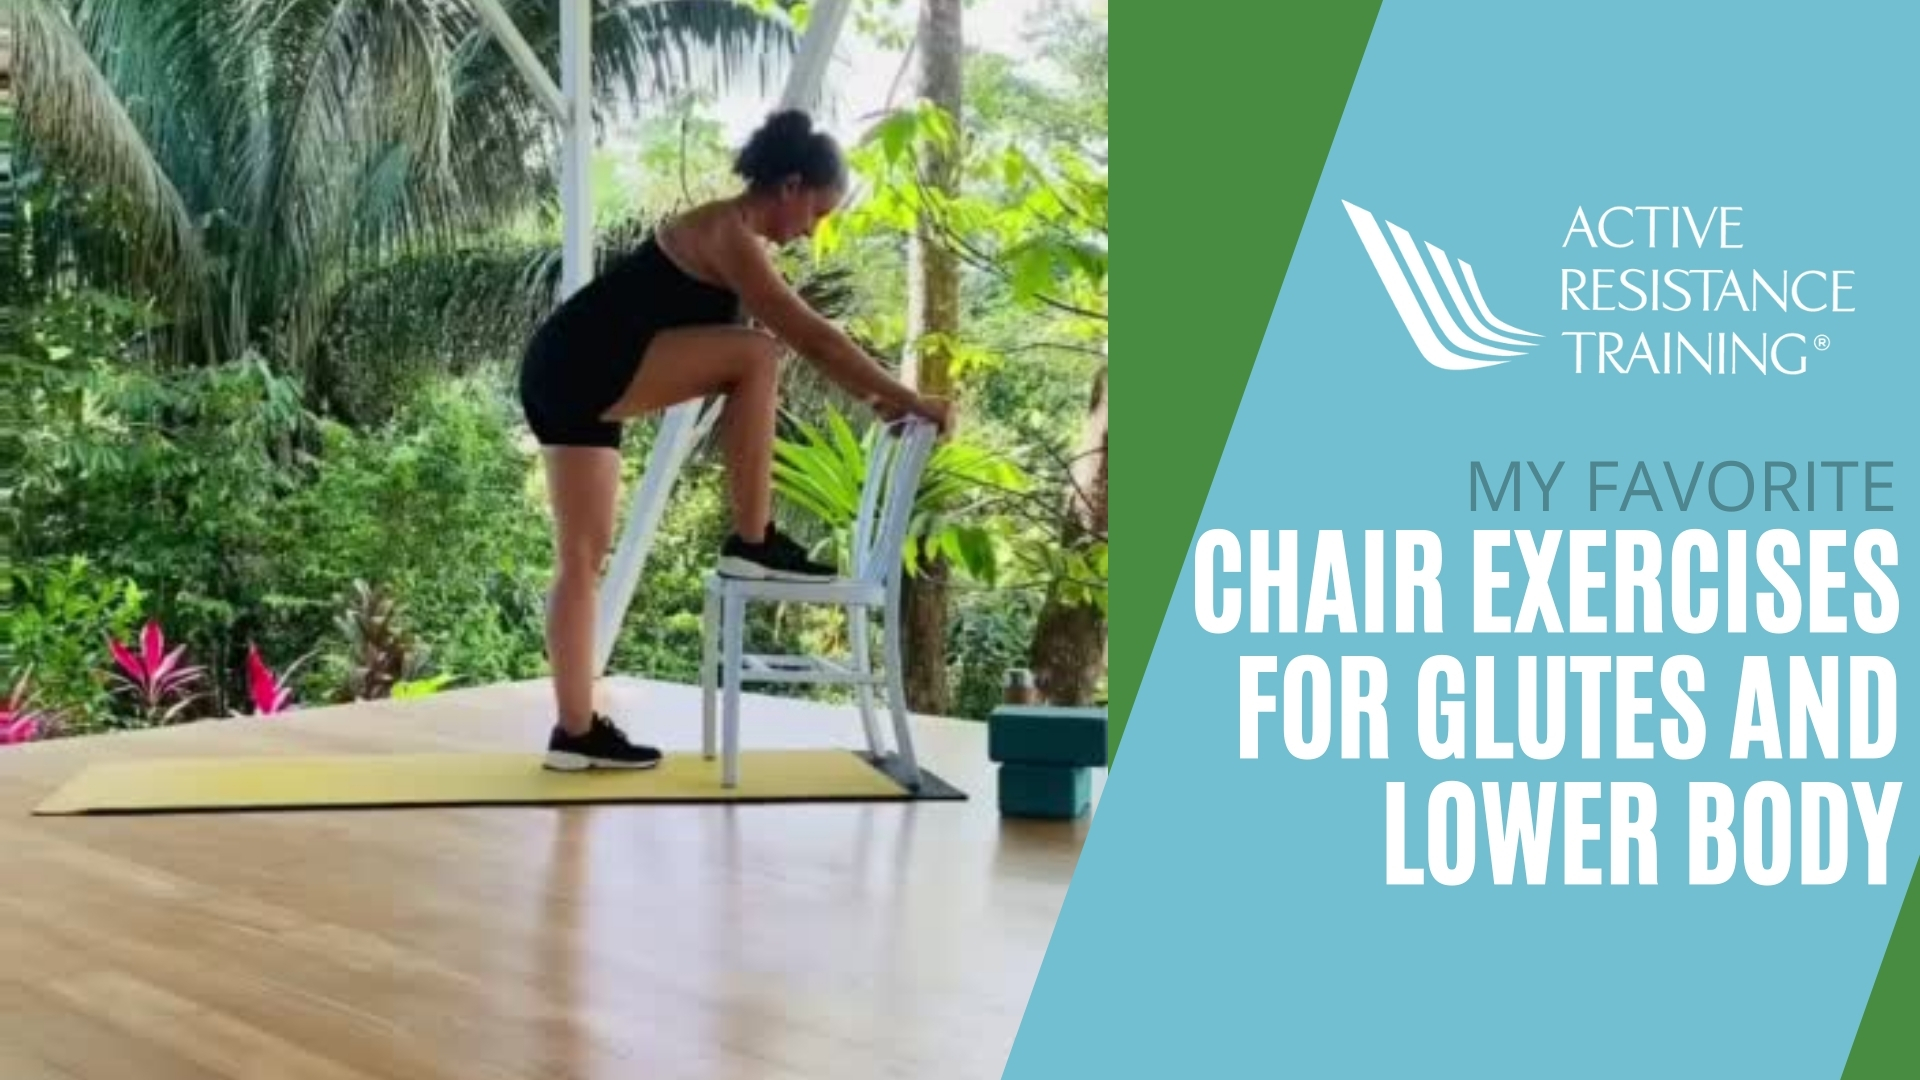 glute & lower body exercises using a chair